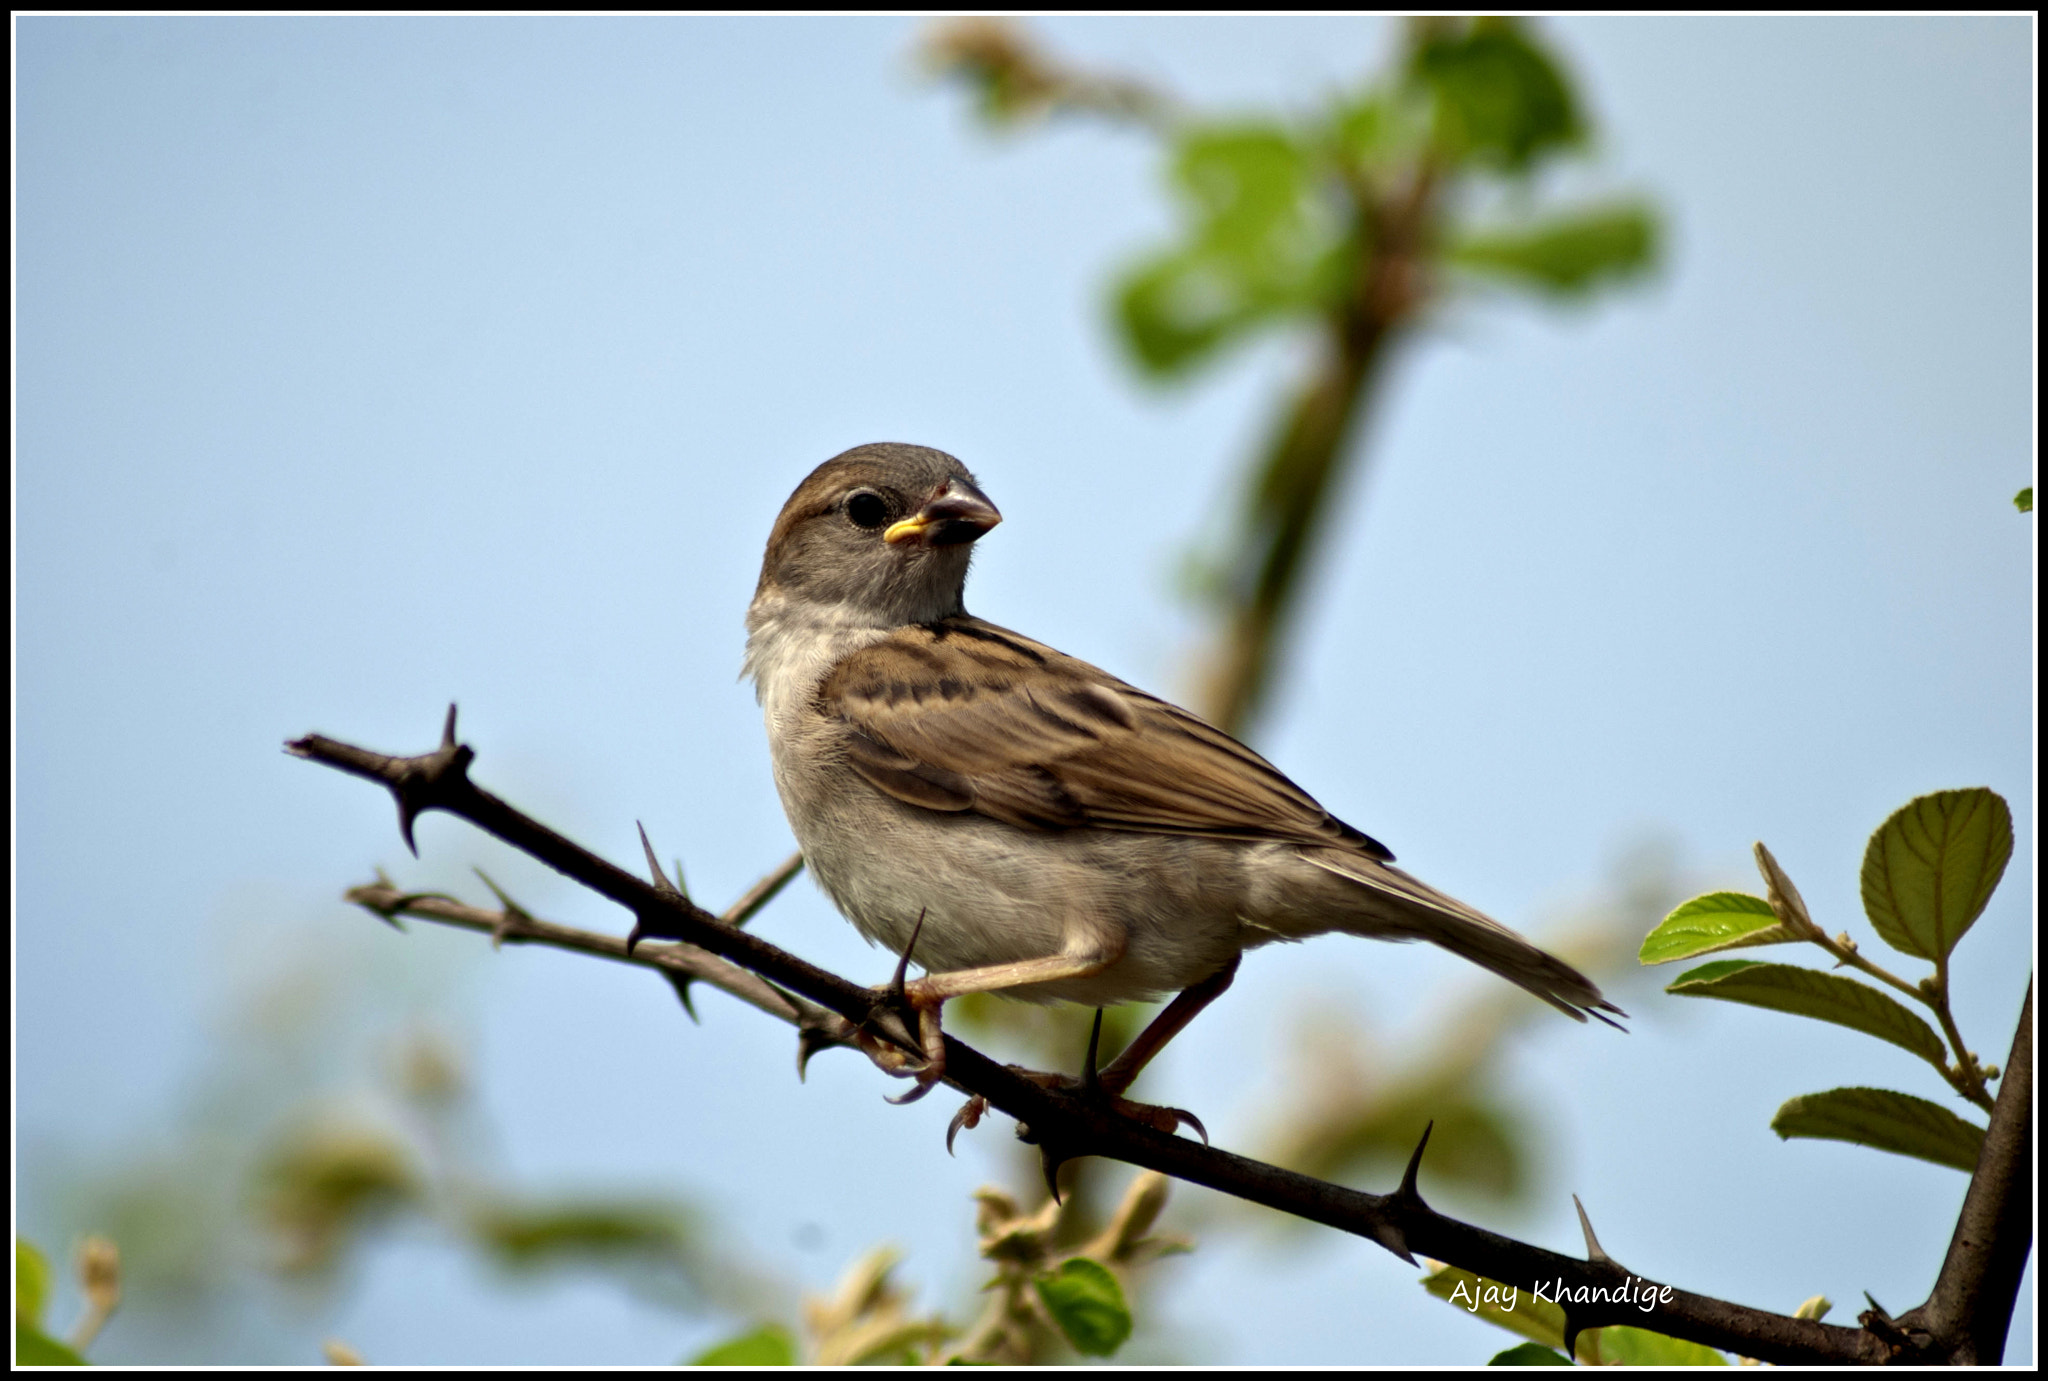 Photograph House Sparrow by Ajay Khandige on 500px